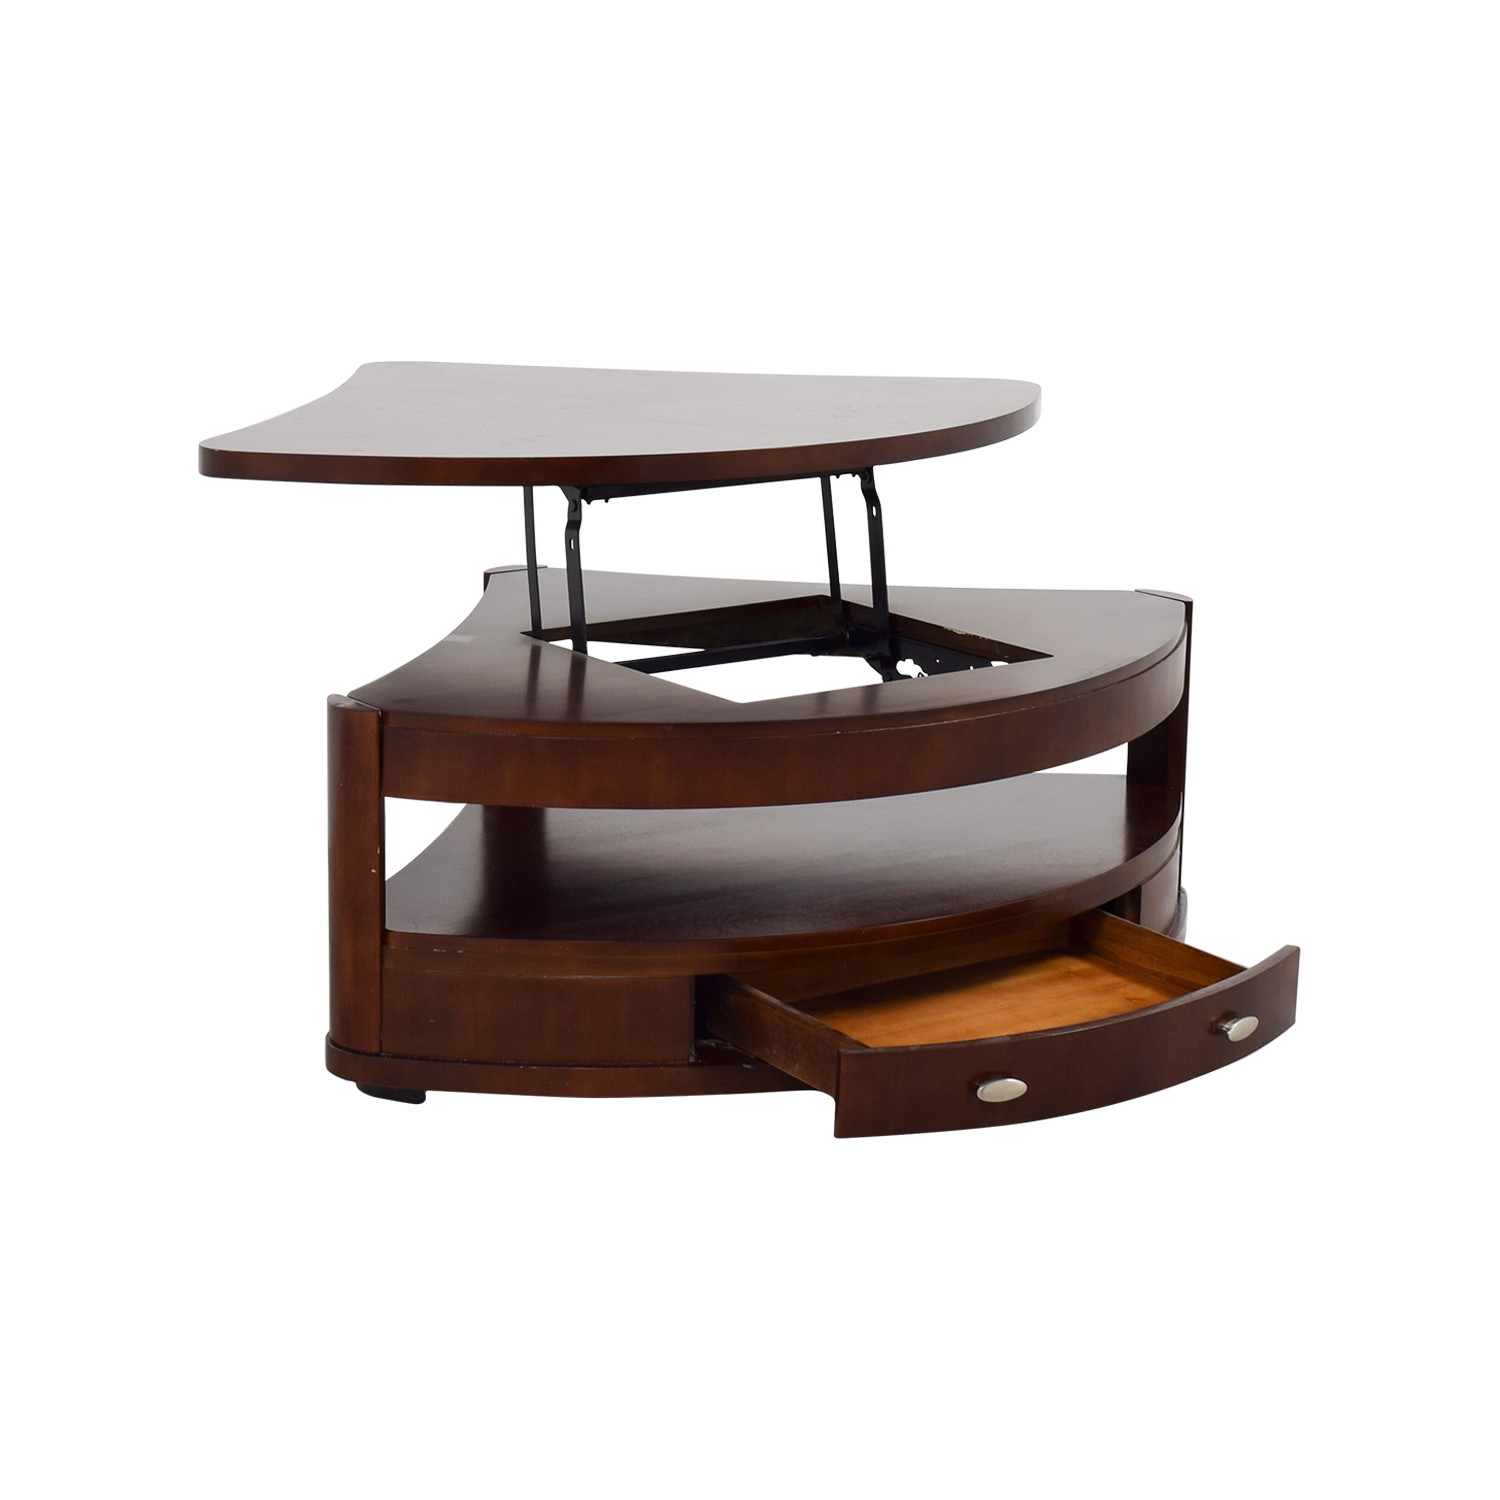 90 off triangular rounded lift top coffee table tables. Black Bedroom Furniture Sets. Home Design Ideas